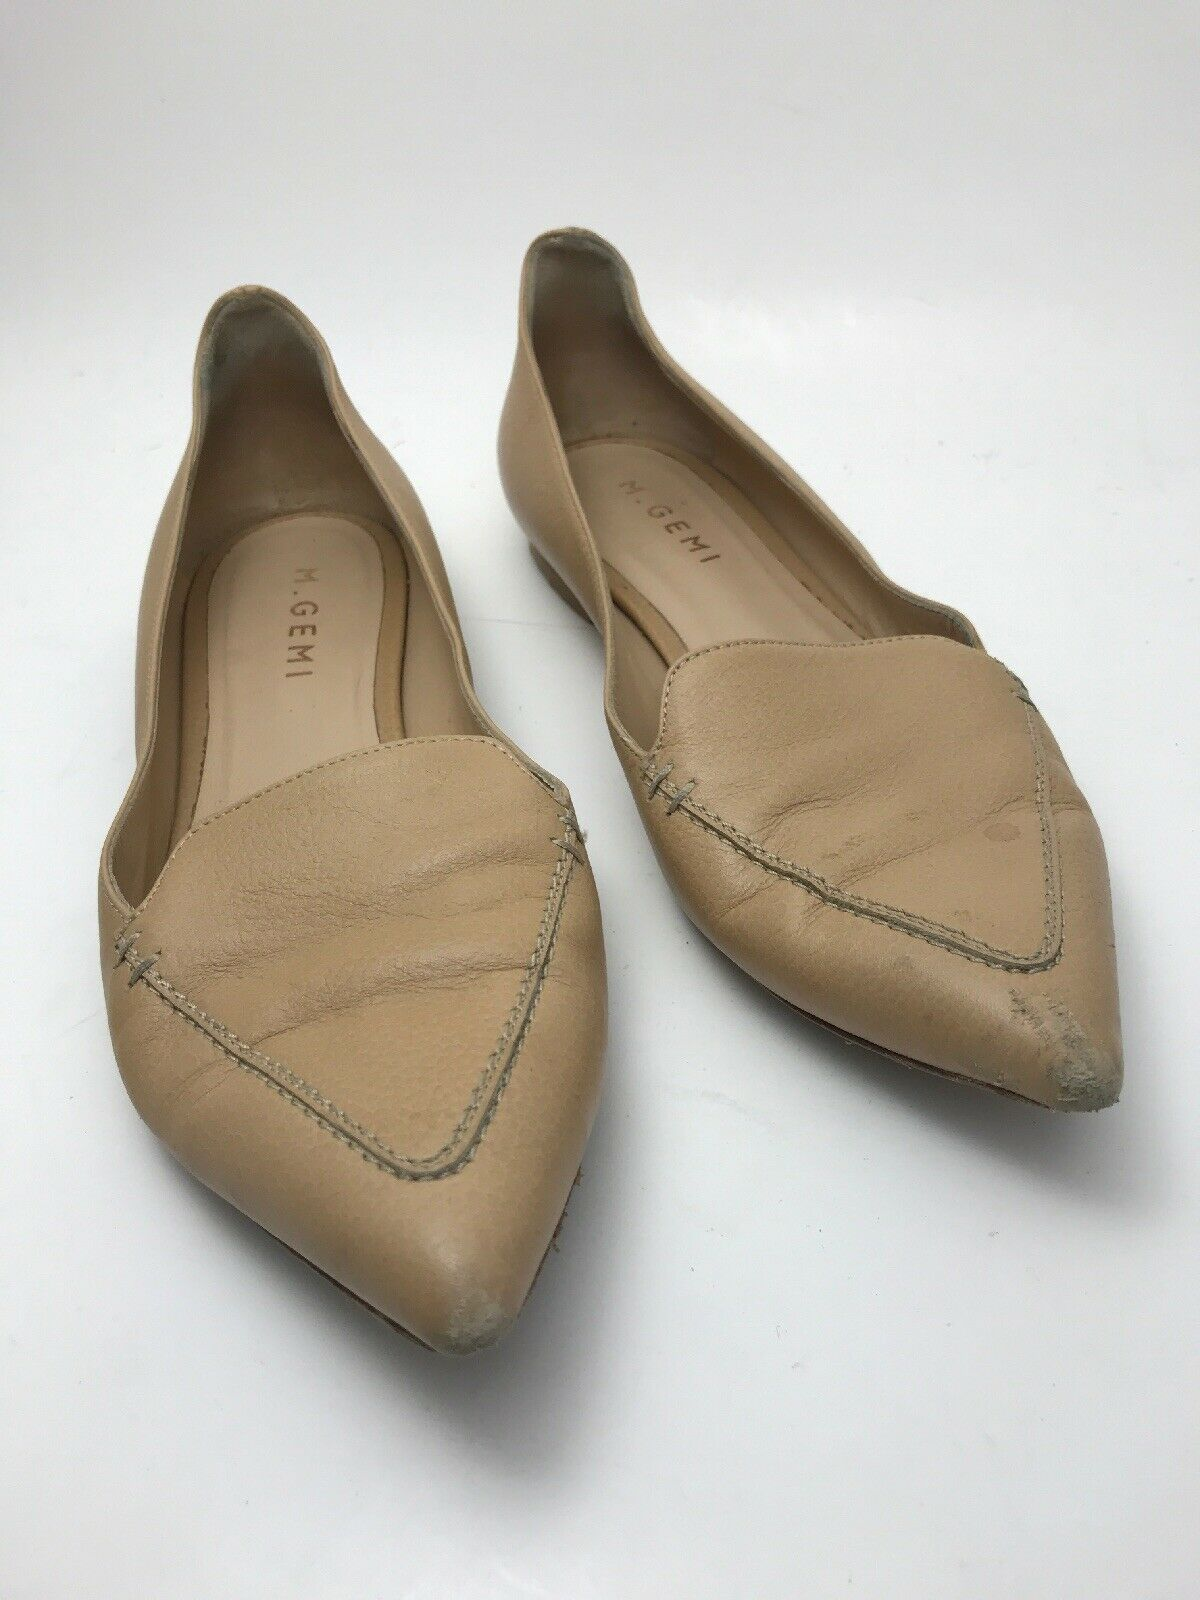 M. Gemi Stellato leather point toe flats Size 37   US 6.5-7  Made in